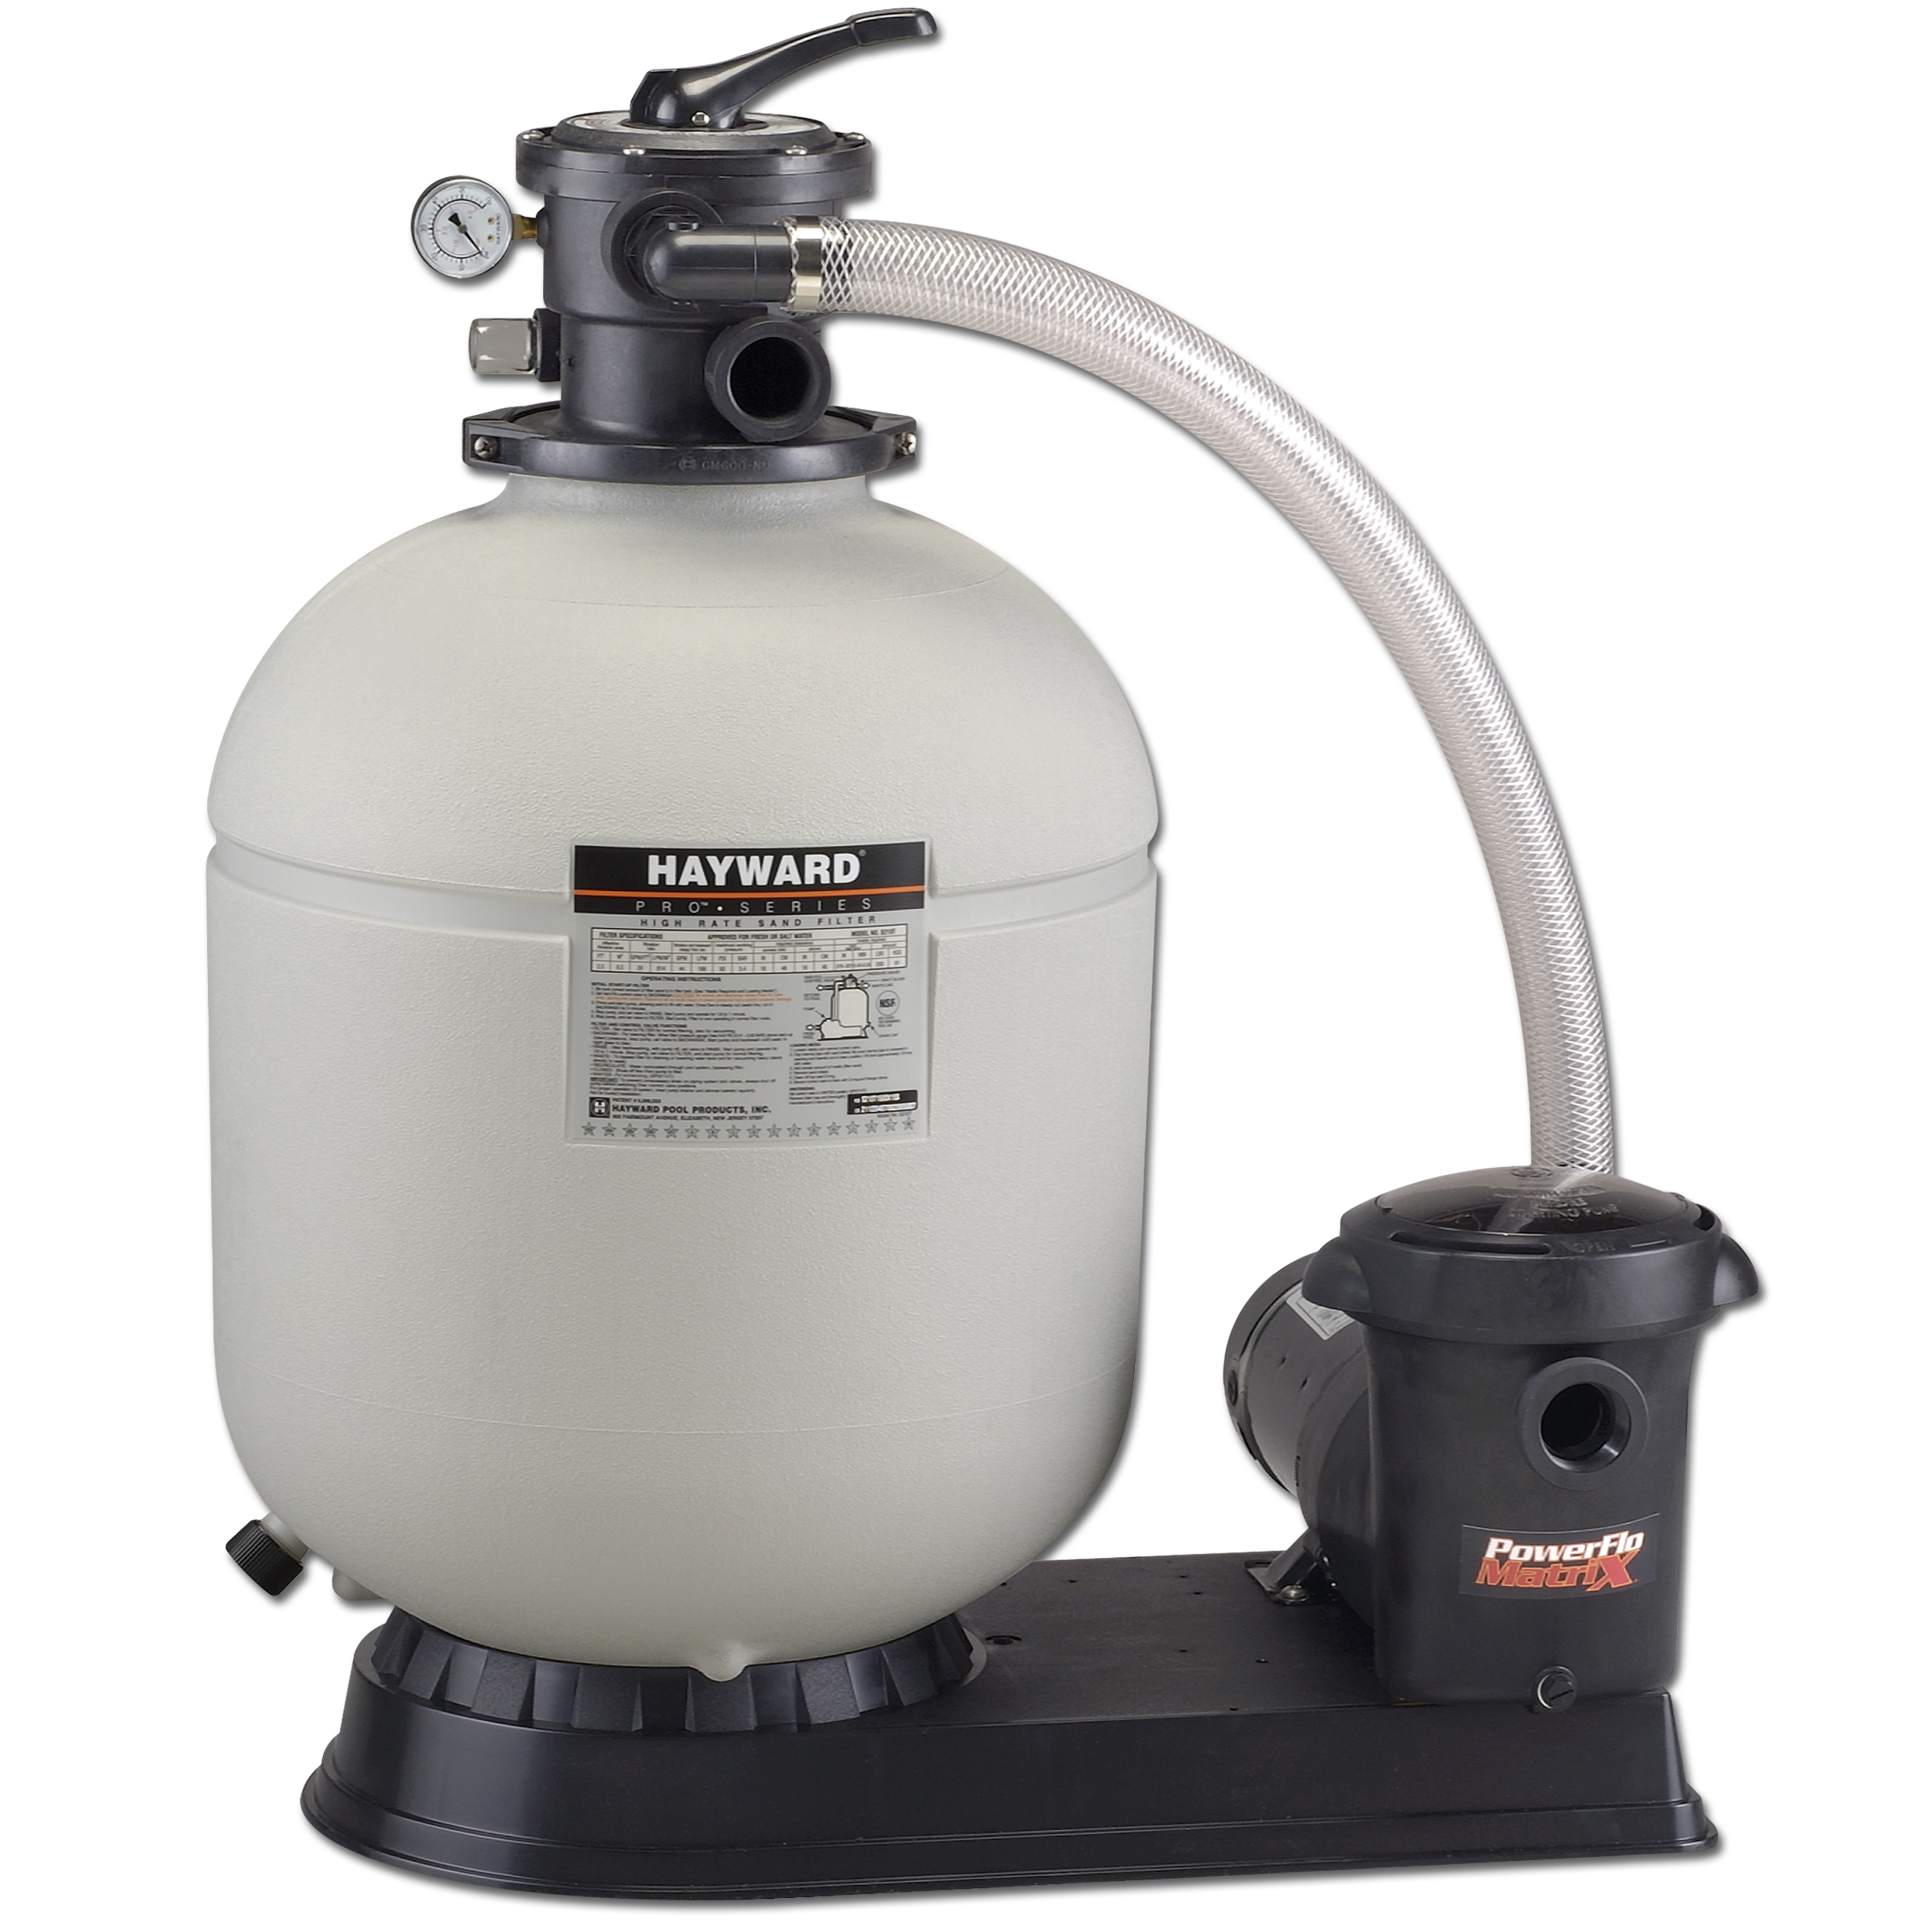 Hayward Pro Series 18 Inch Above Ground Pool Sand Filter System with Pump